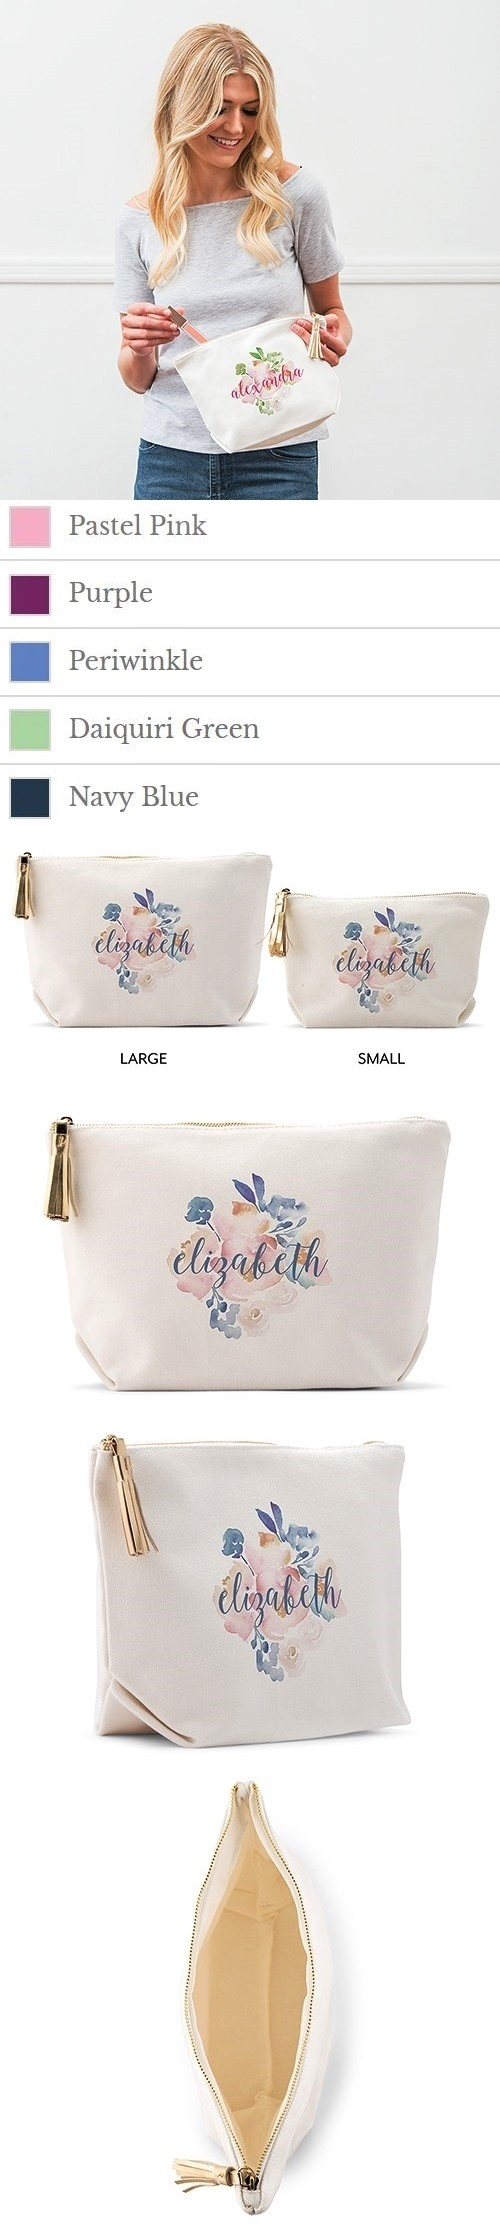 Weddingstar Personalized White Canvas Makeup Bag - Floral Garden Party